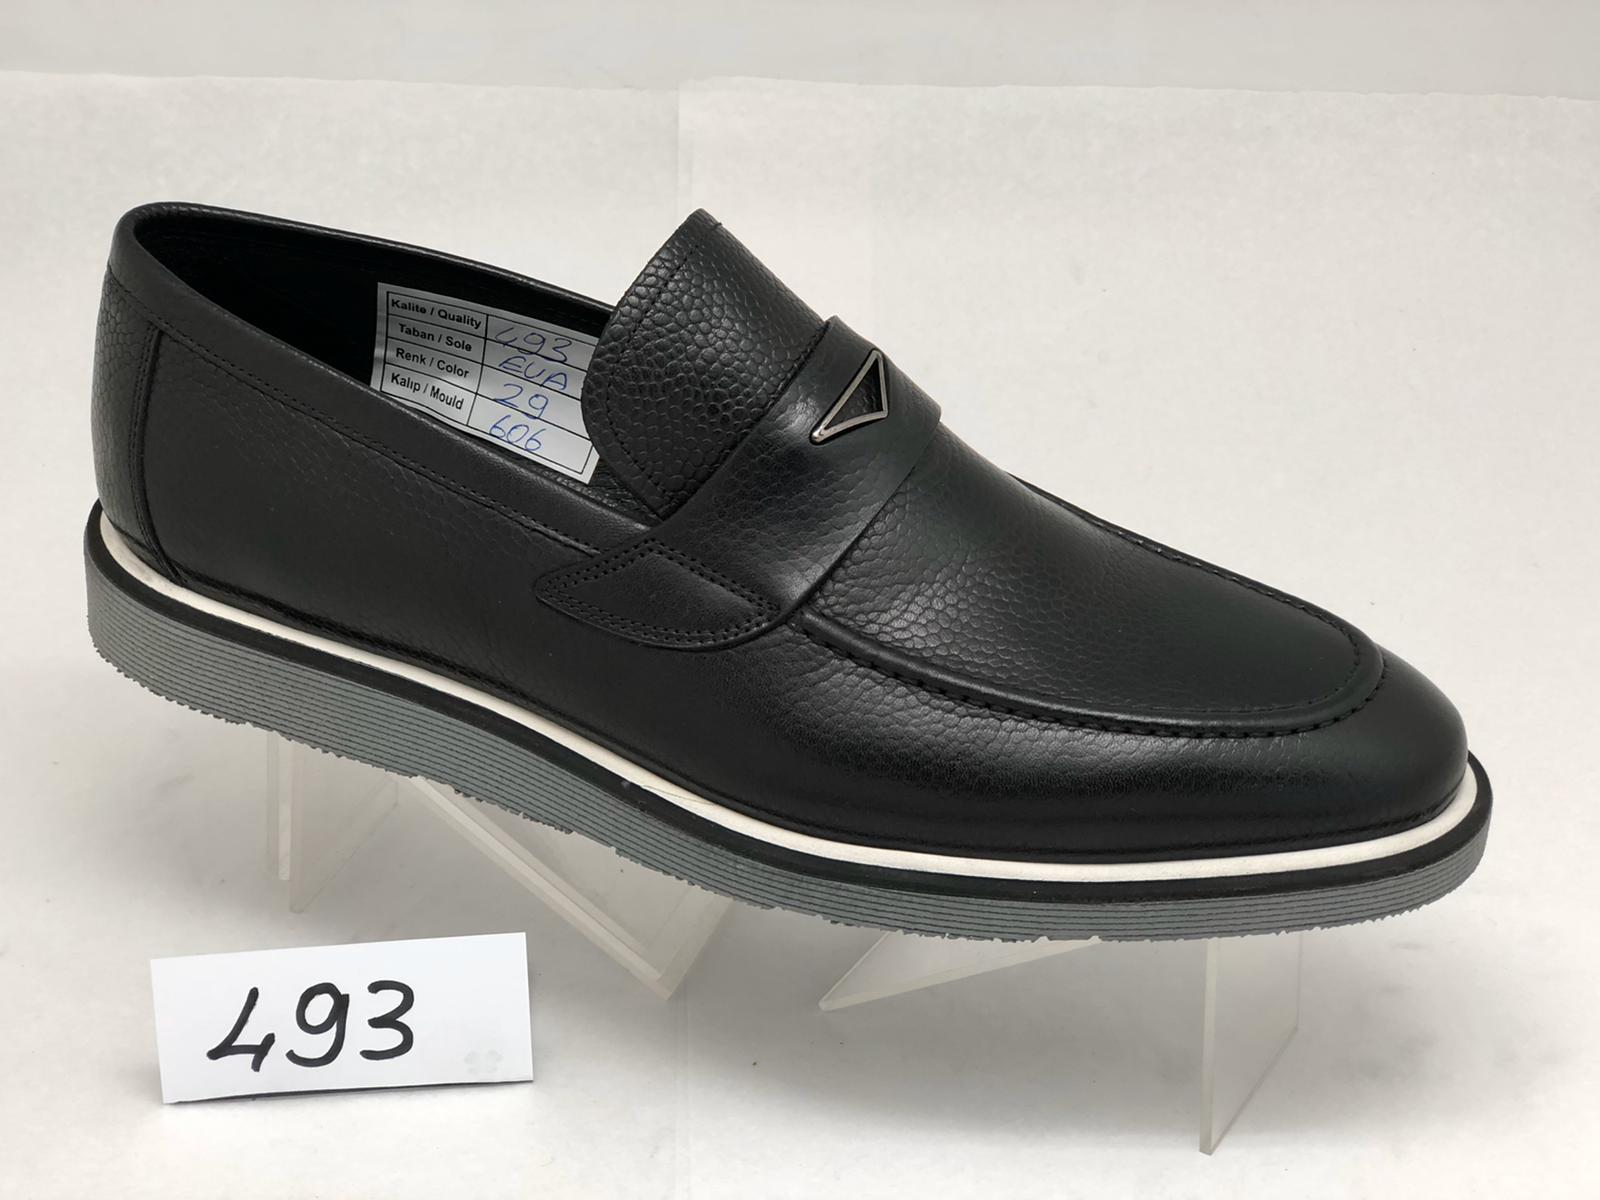 Eva Sole Shoes-493, Inner Outer Genuine leather, Available:Tpu, Neolite, microlight, thermo, Rubber